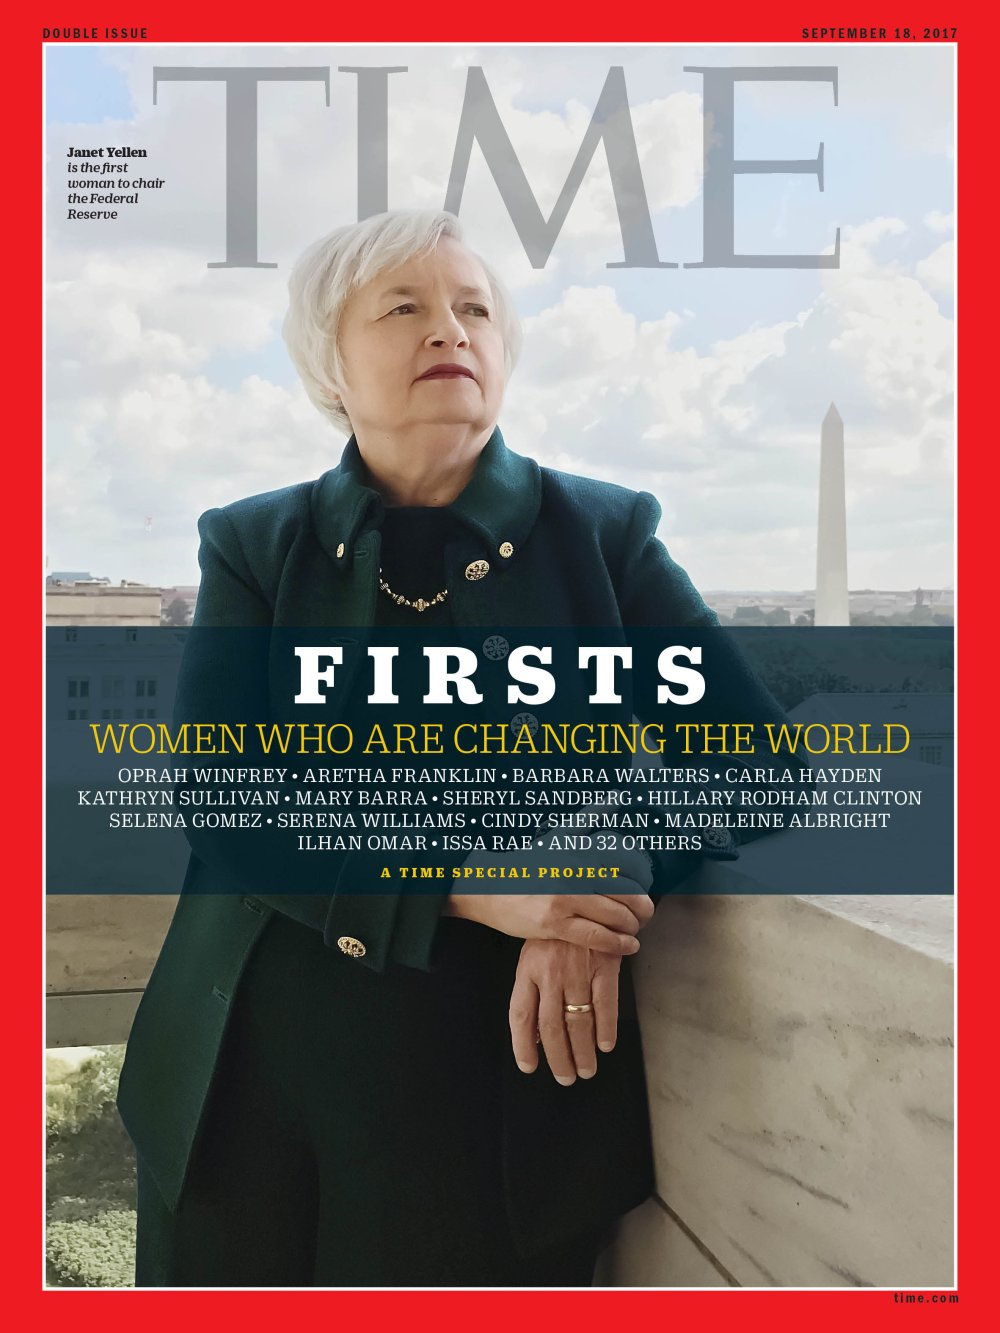 time firsts women leaders janet yellen time com time firsts women leaders janet yellen